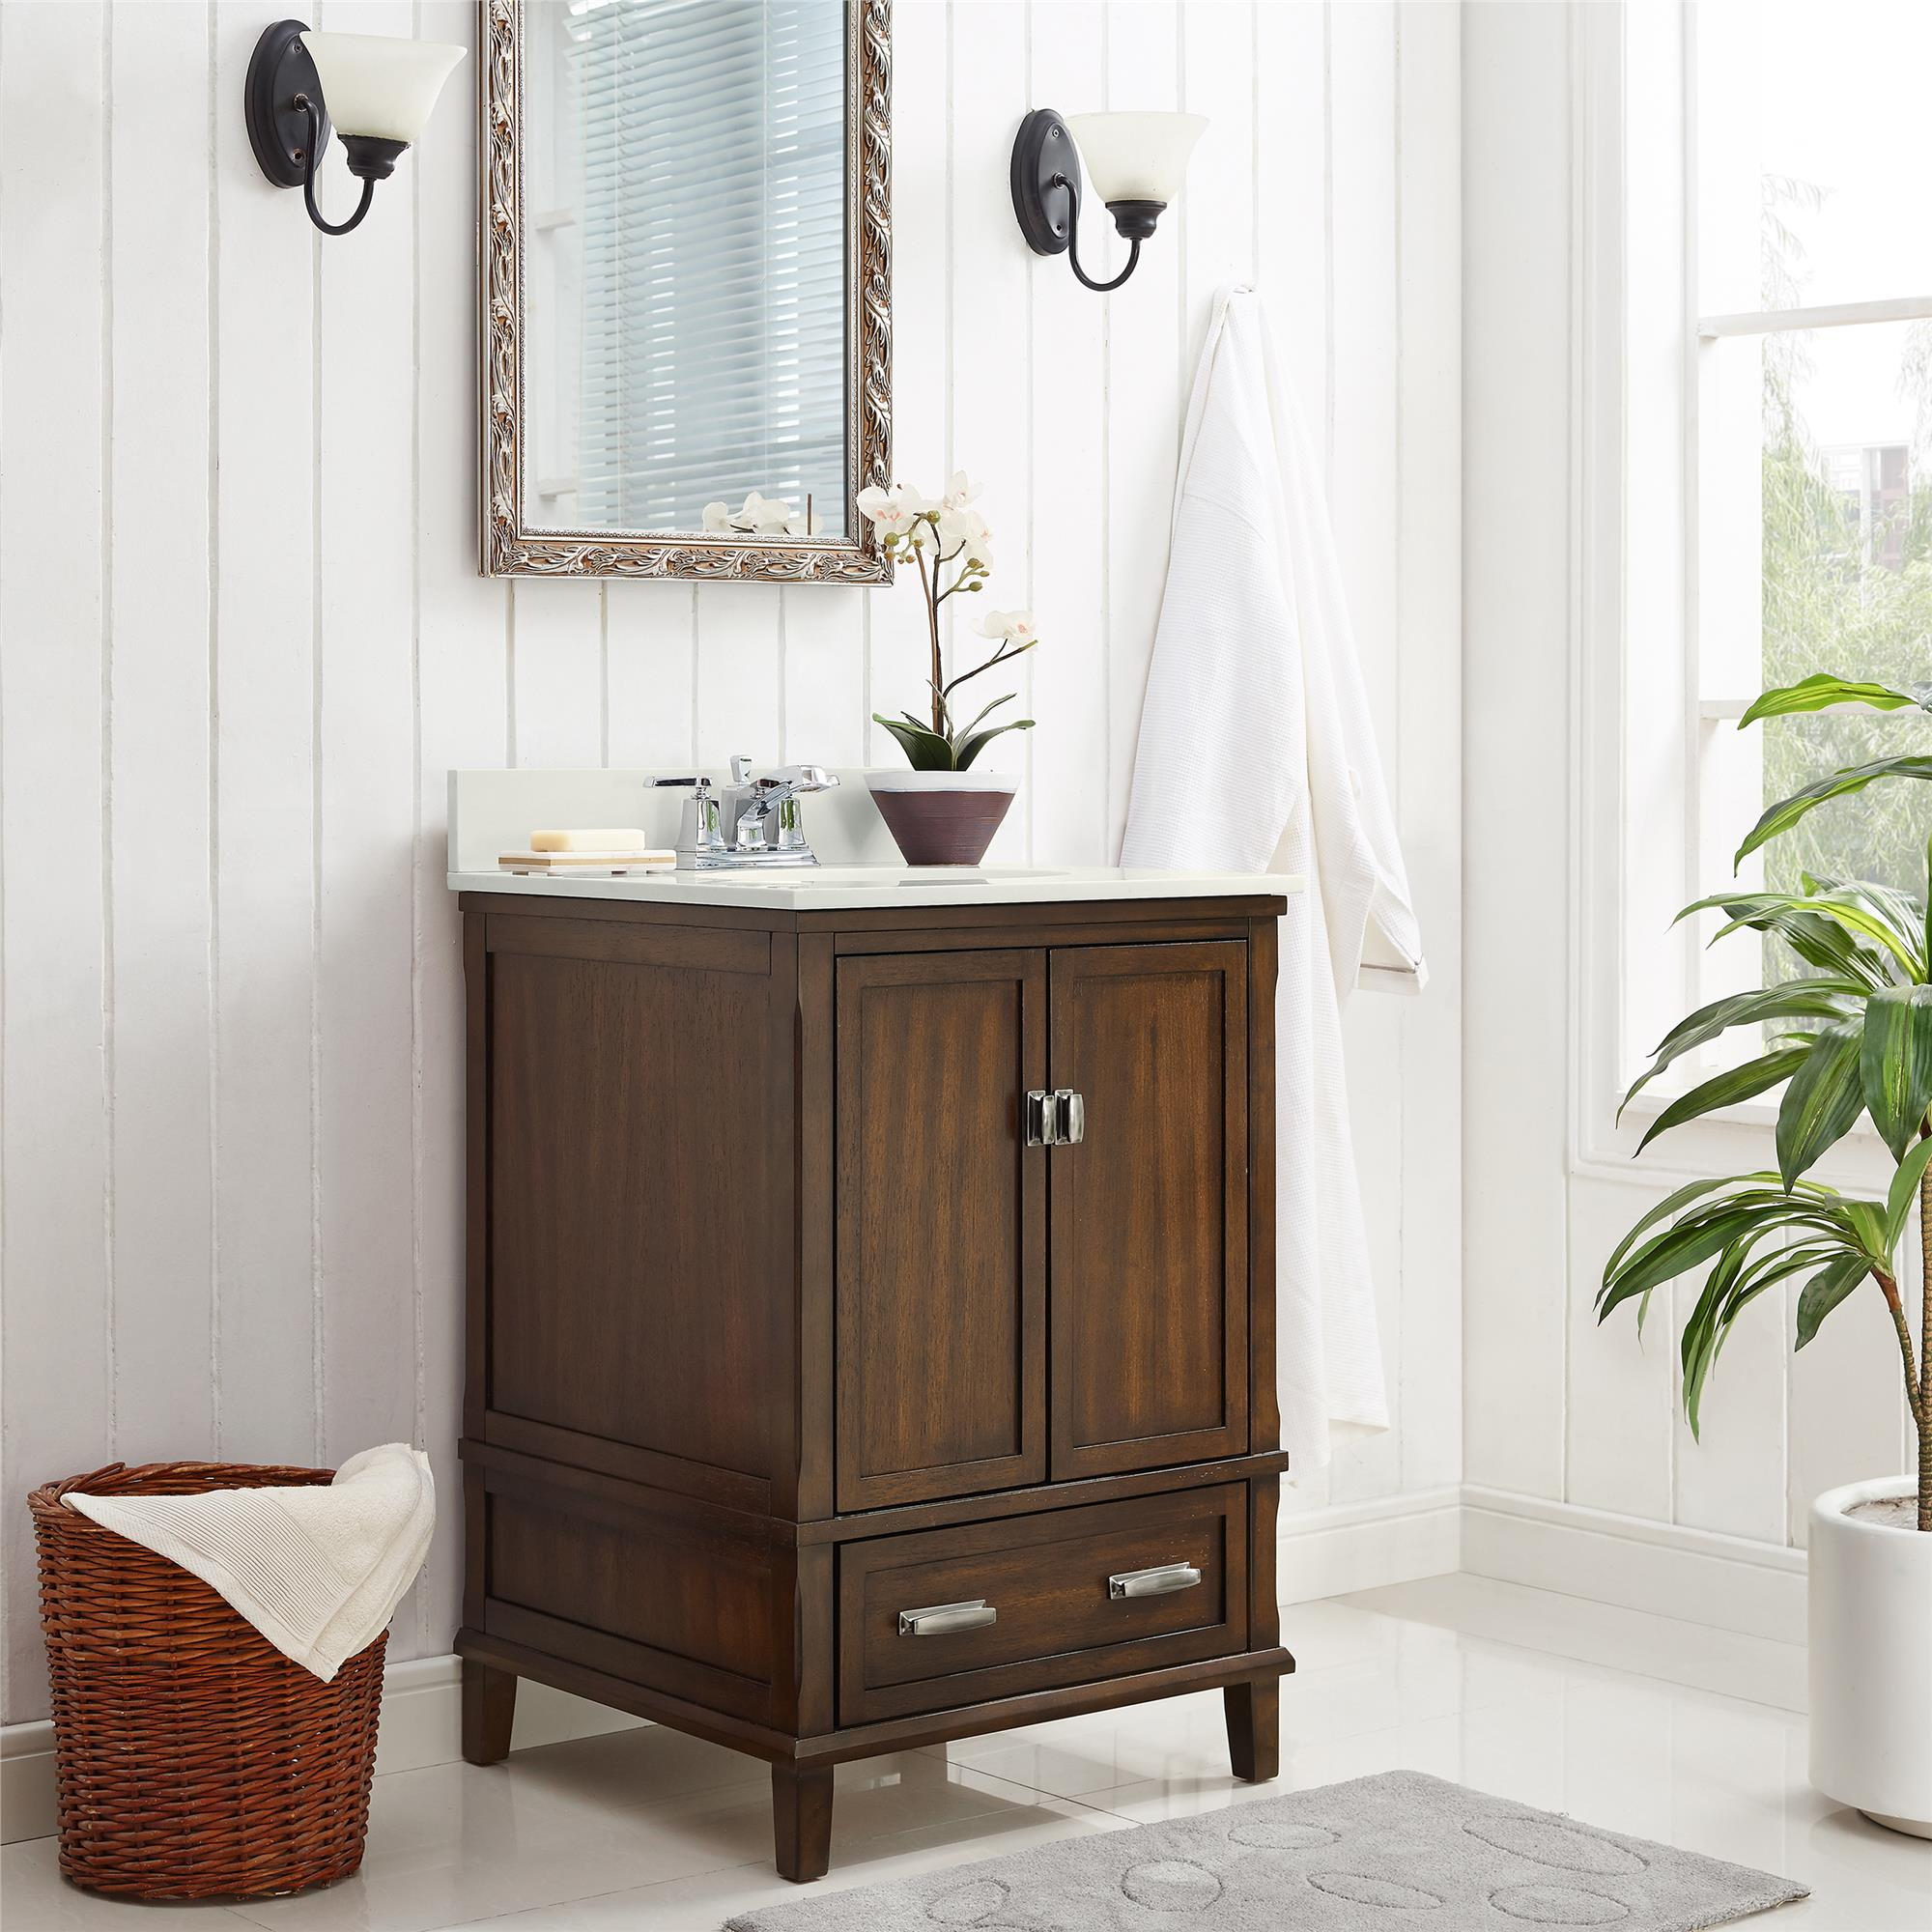 Dorel Living Otum 24 Inch Bathroom Vanity With Sink Dark Walnut Wood Walmart Com Walmart Com